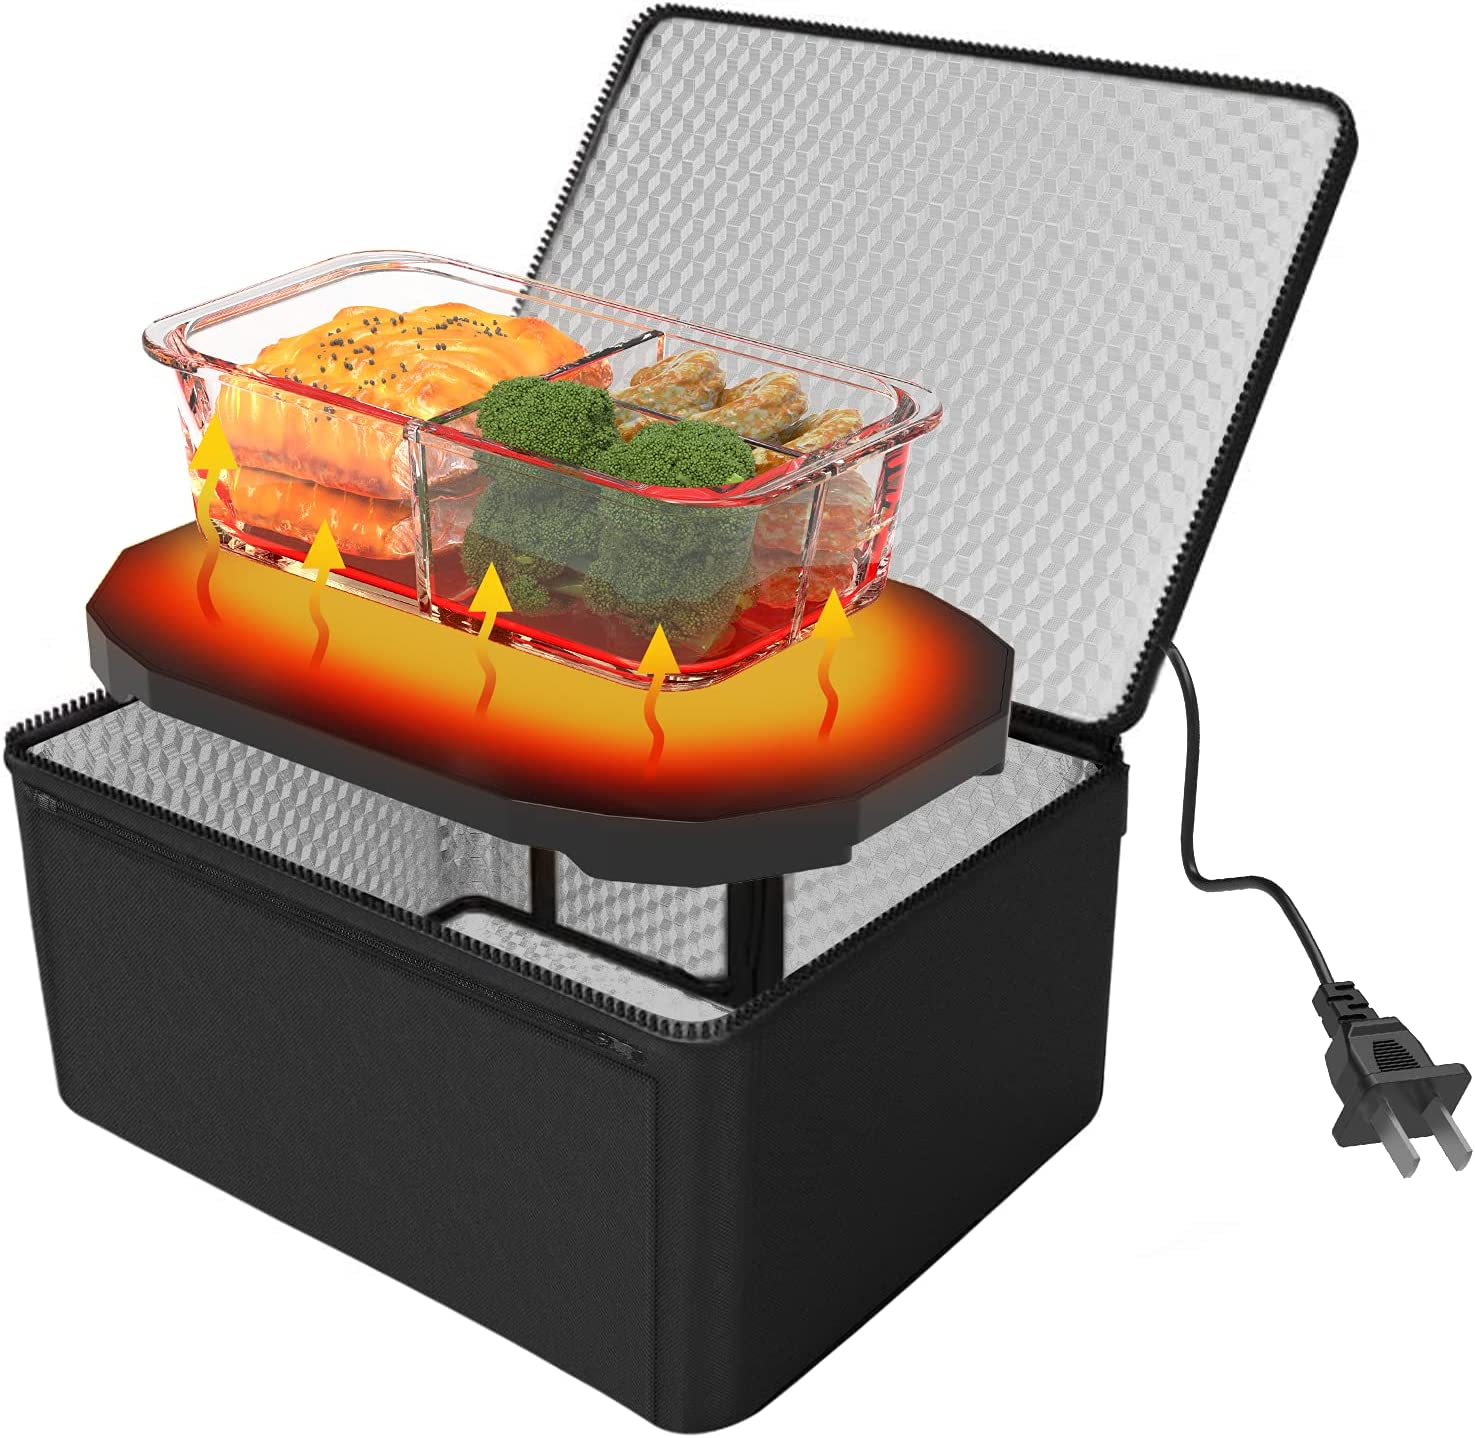 Personal Portable Oven Food Warmer - GoodFaith 110V Mini Oven Electric Heated Launch Box Food Warming Tote Meals Reheating & Frozen/Raw Food Cooking On-The-Go for Office/Dorm/Camping and more